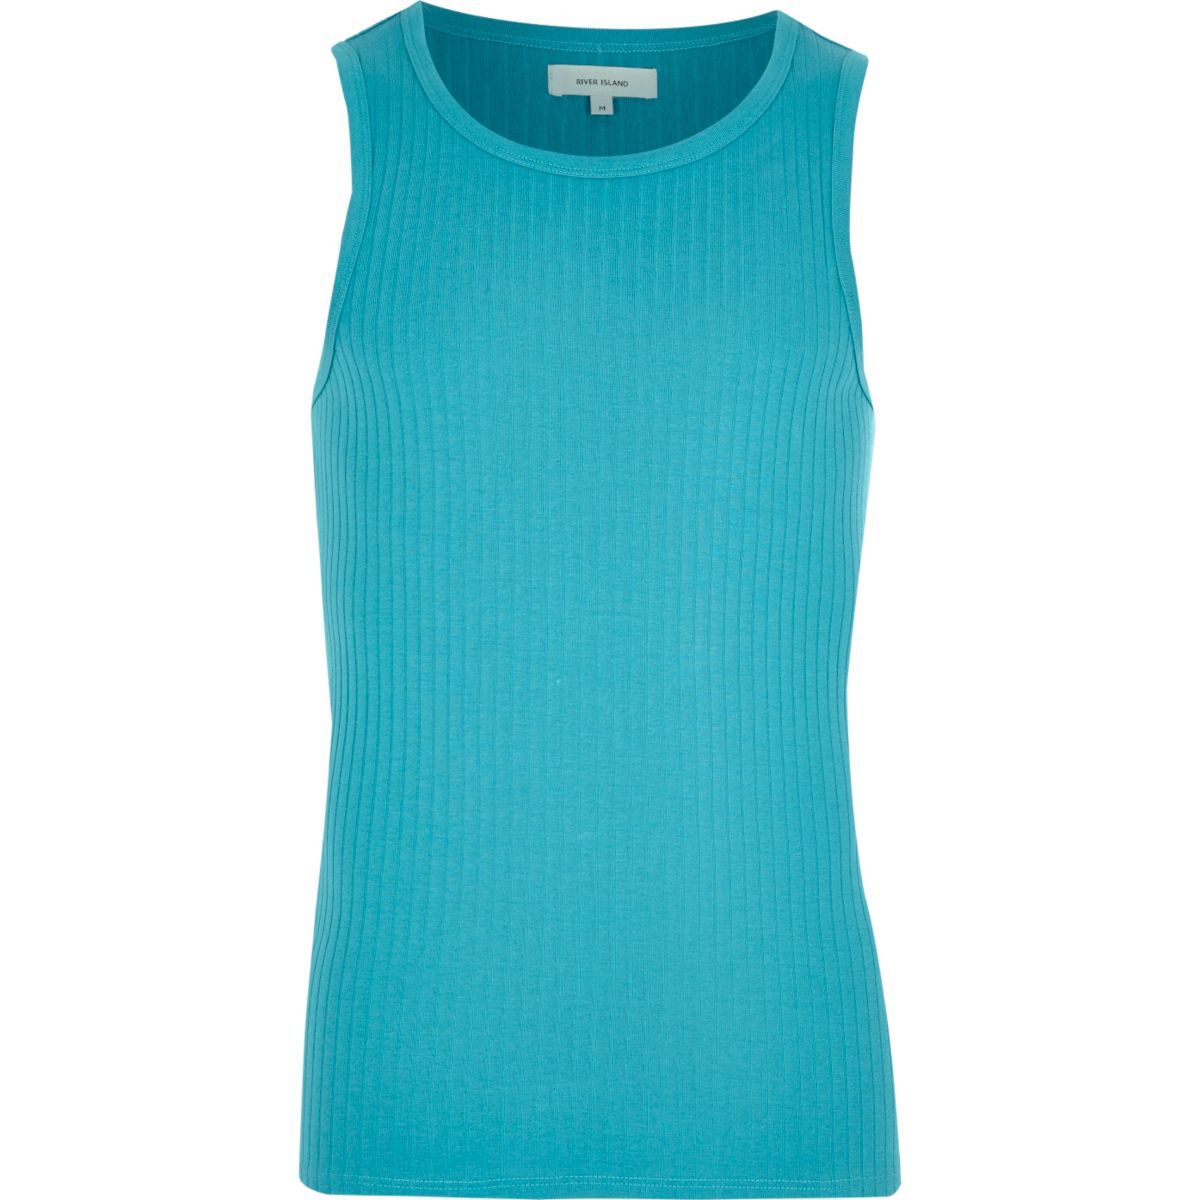 Blue ribbed vest